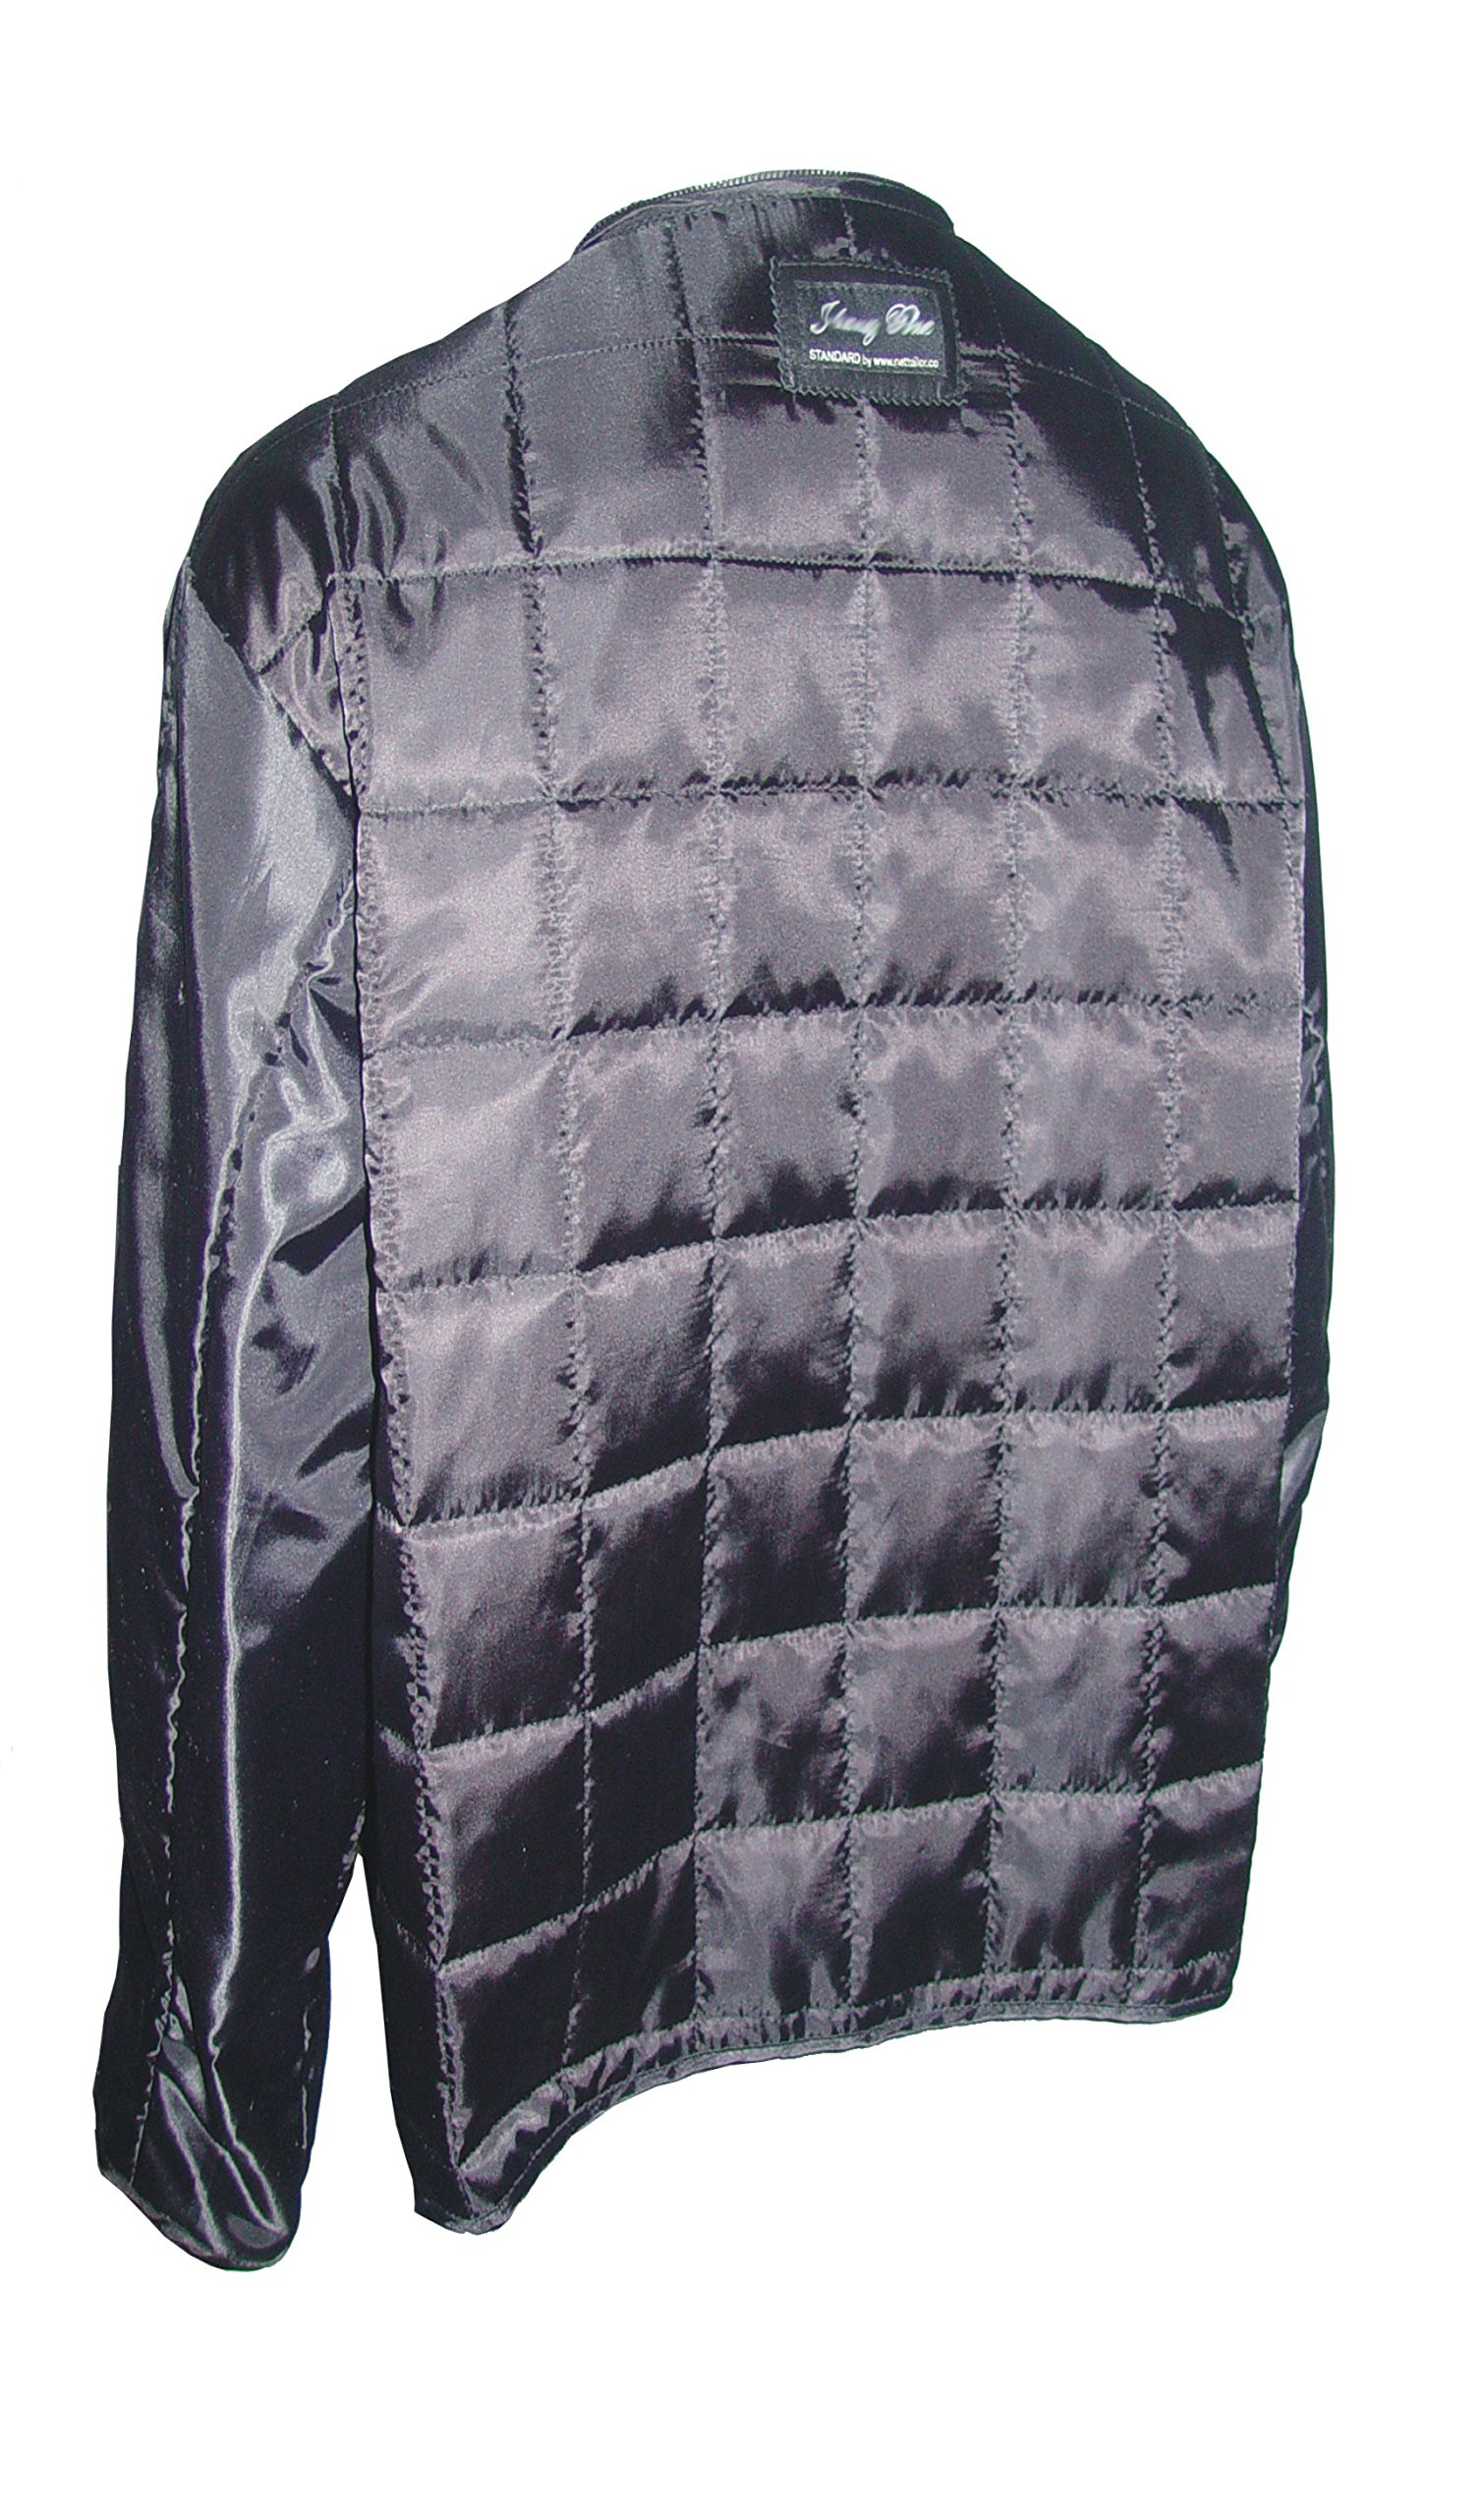 Paccilo 4 Season Wear Womens 4177 PETITE & ALL SIZELambskin Leather Parka Jacket by Paccilo (Image #3)